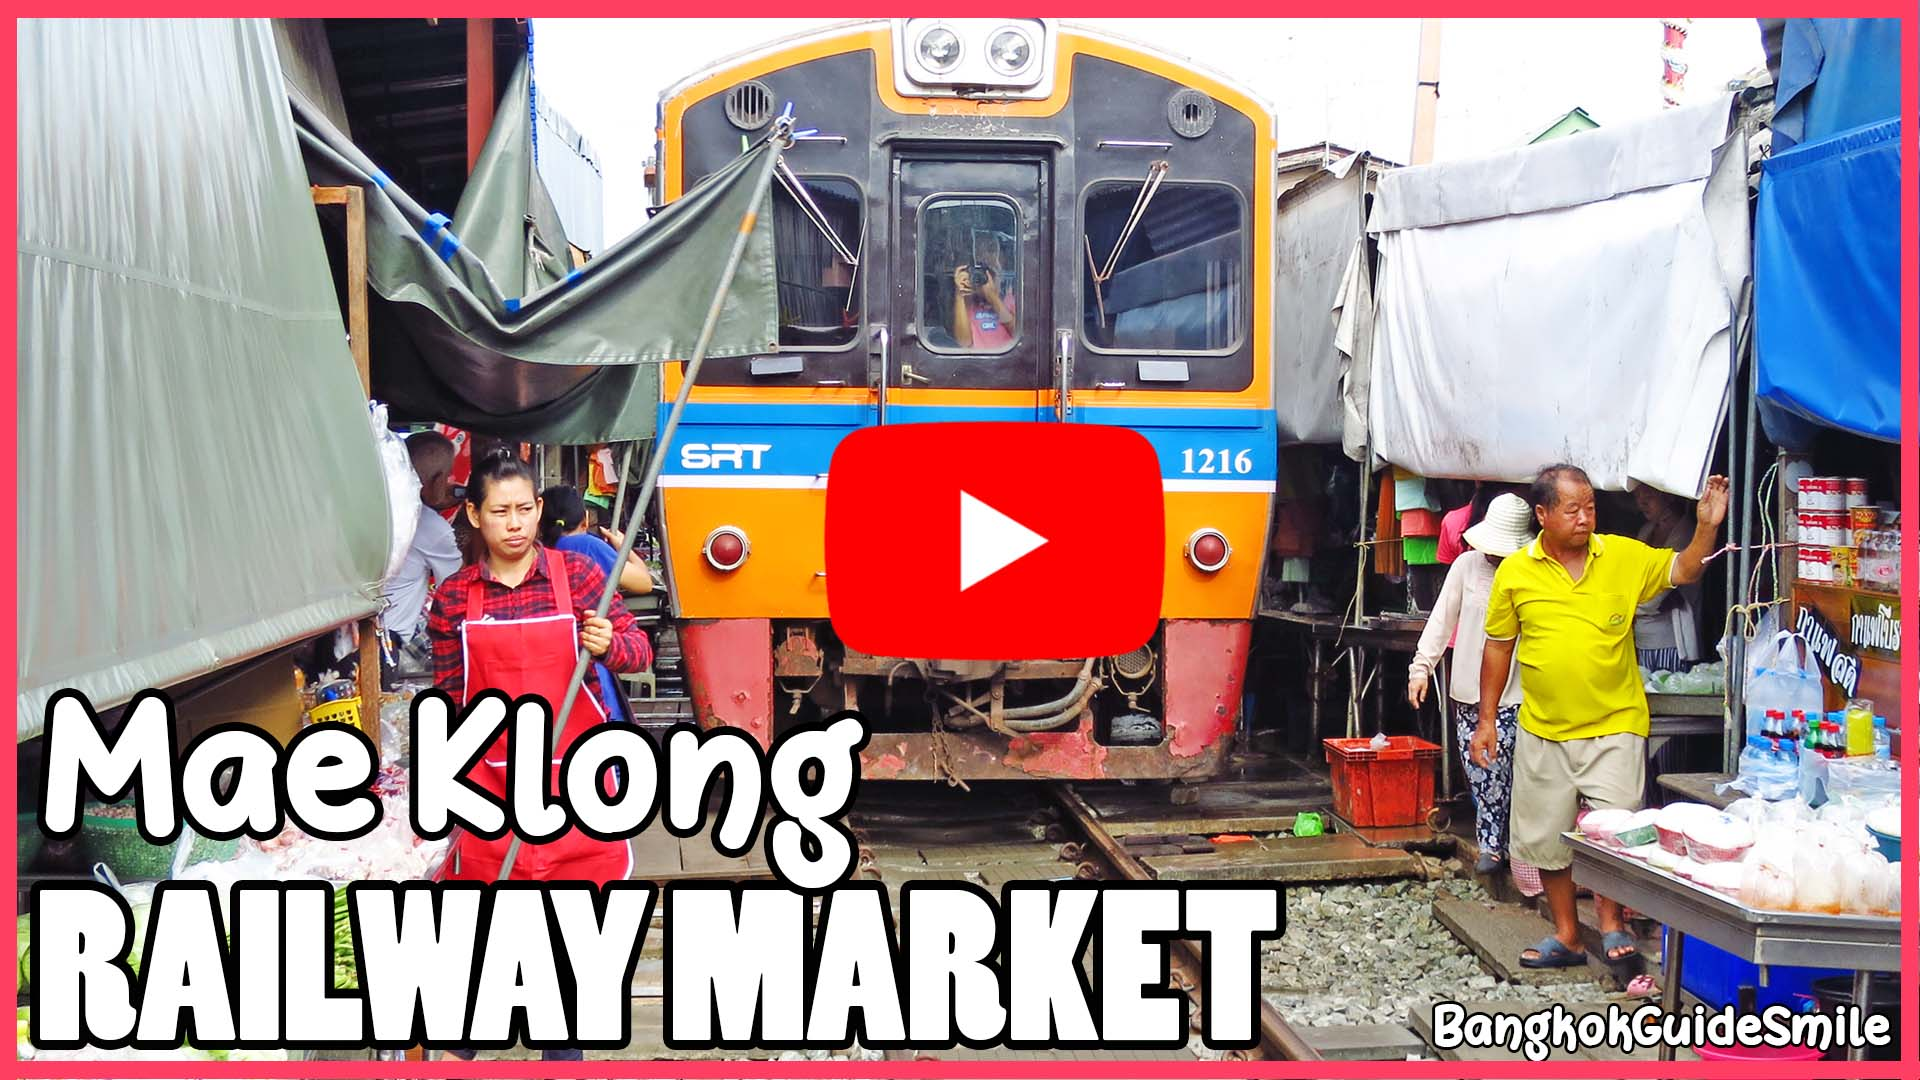 Bangkok-Guide-Smile-Private-Tour-Railway-Market-Maeklong-02.jpg